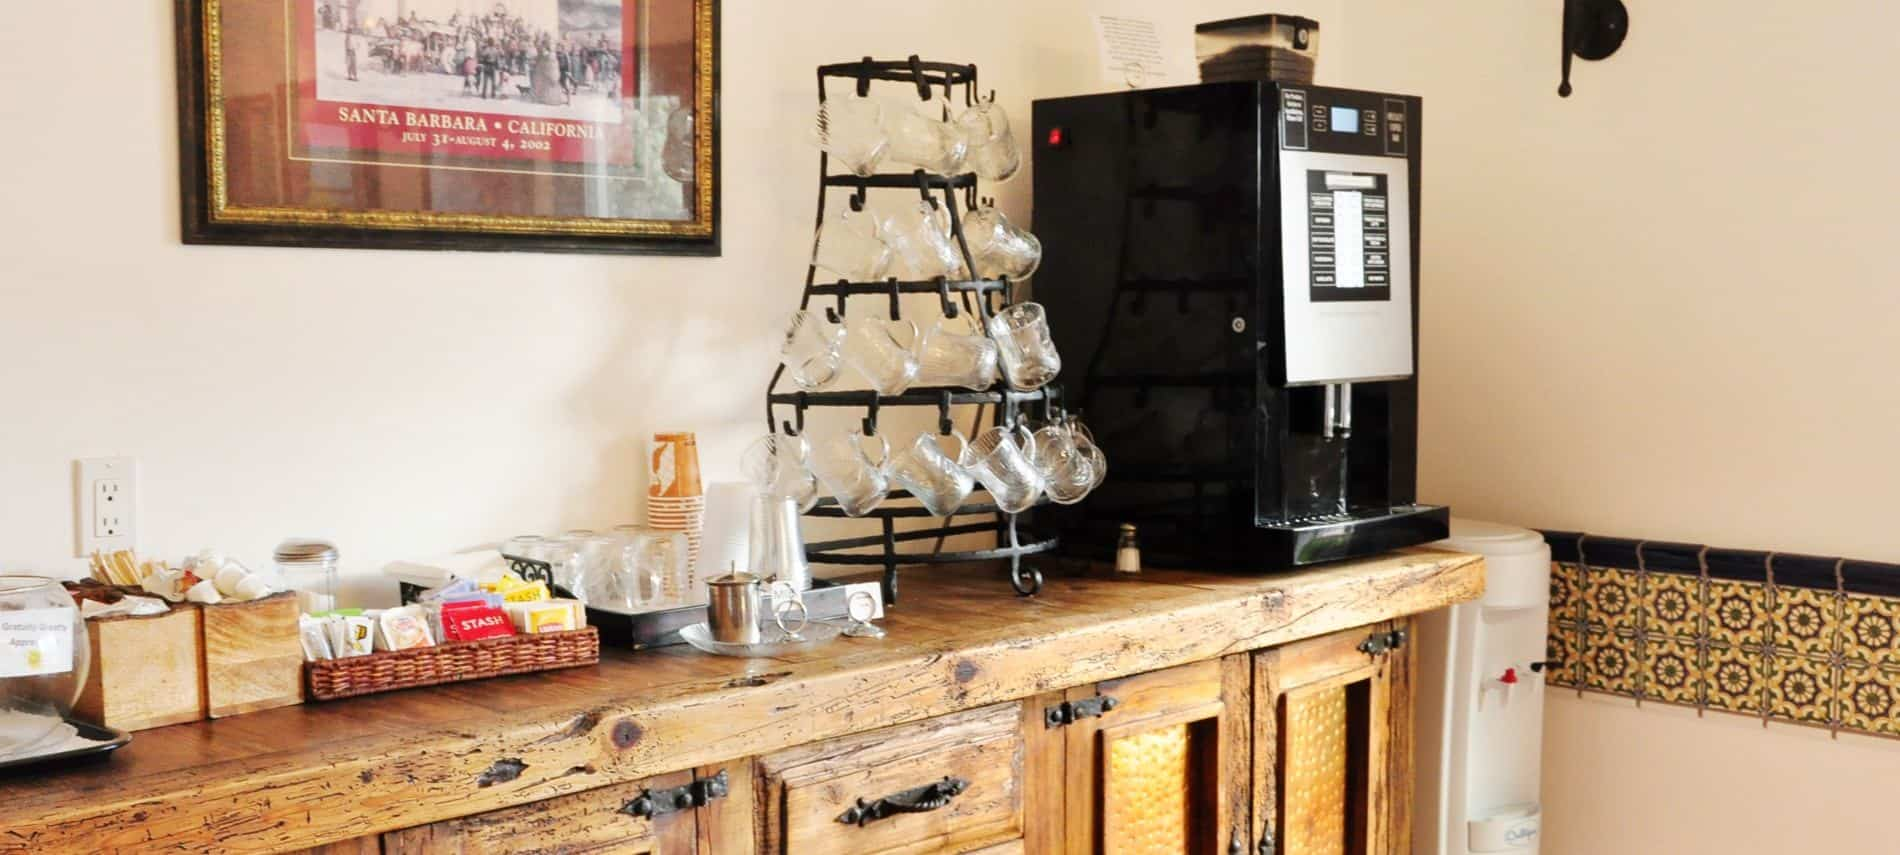 Rustic wood beverage center with deluxe coffee maker, glass mugs and beverage supplies